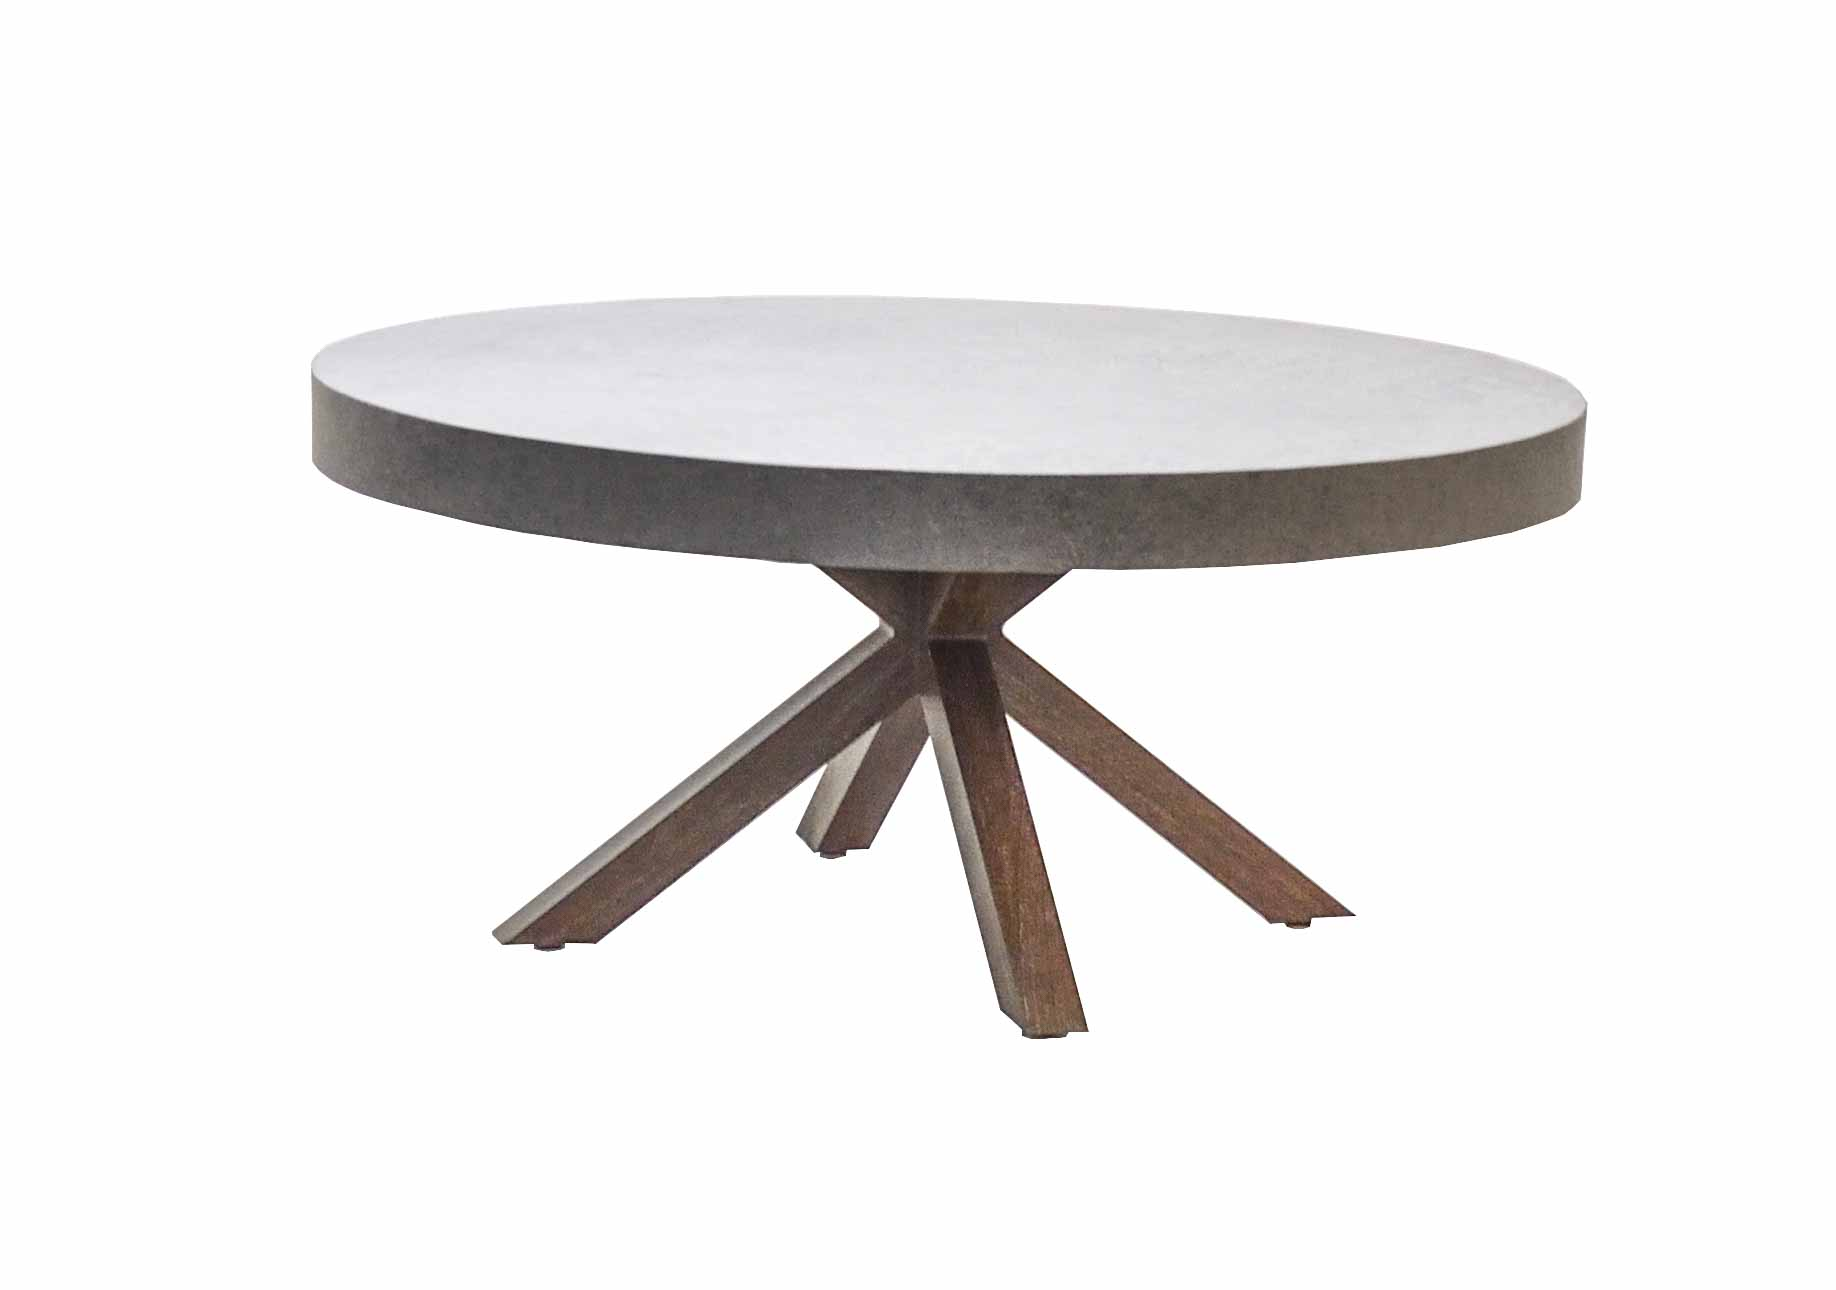 "CLR-42R 42"" Round Coffee Table   42"" dia x 19"""